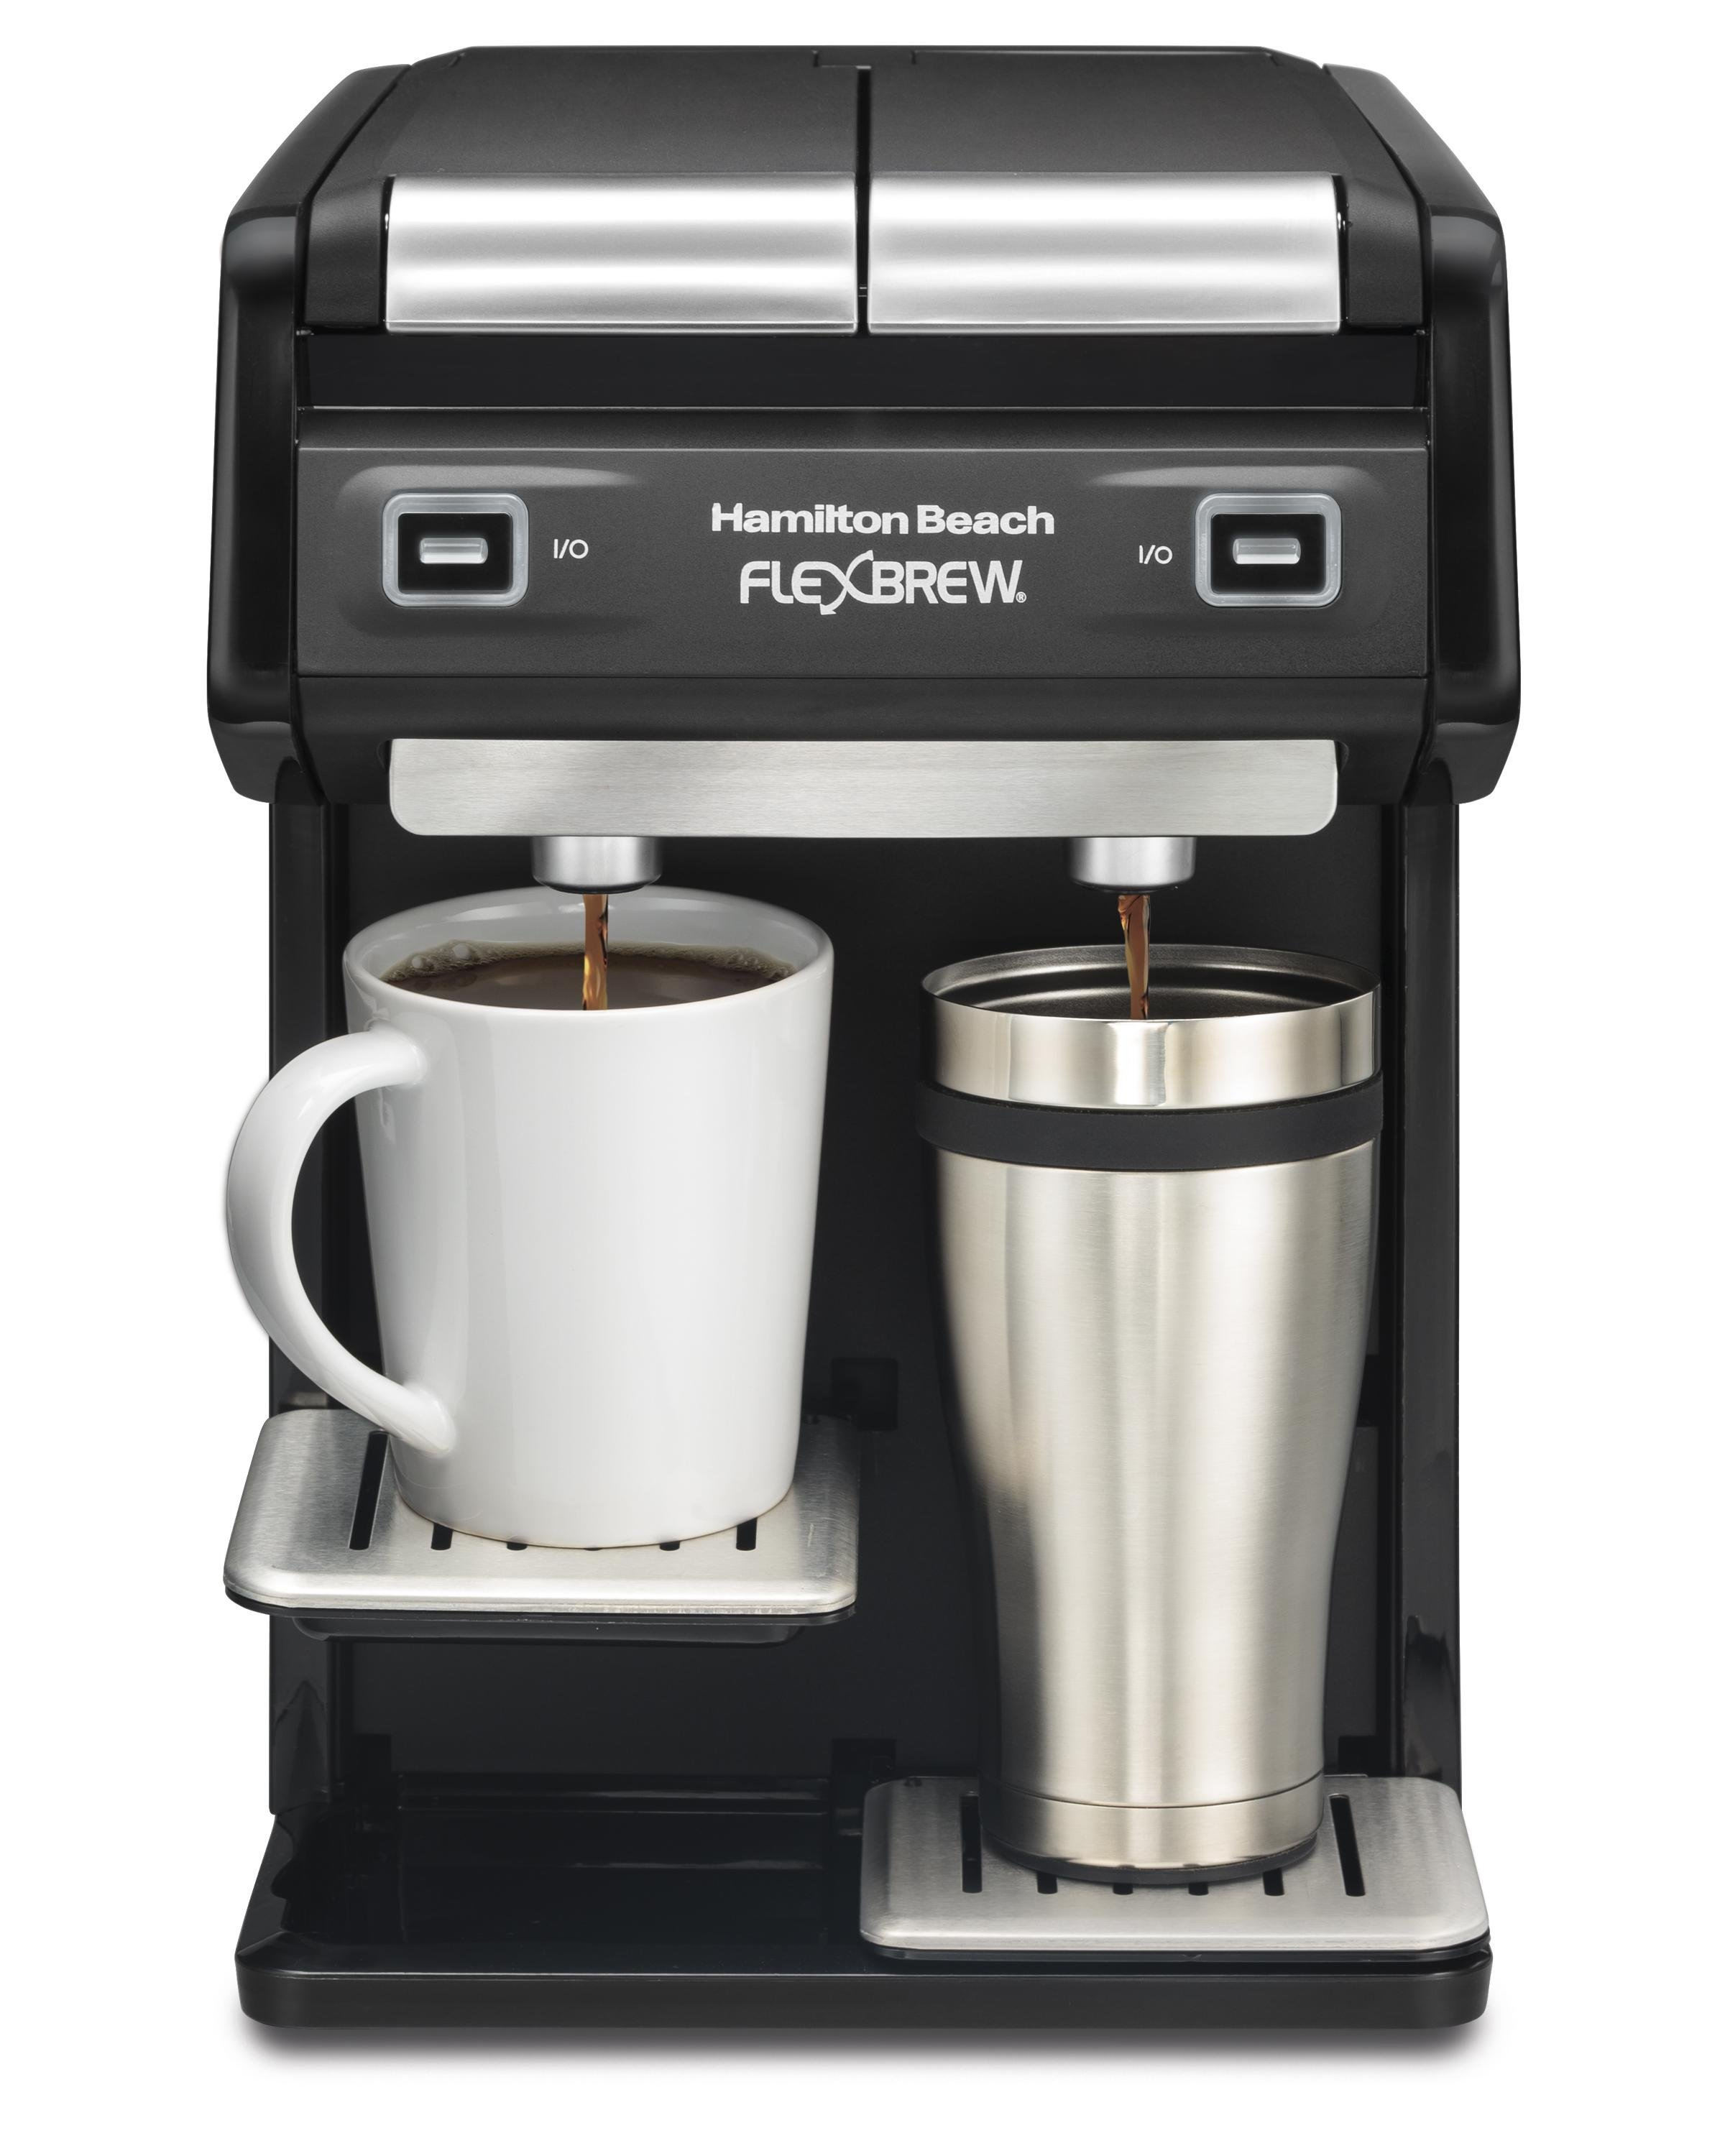 Coffee Maker Dual Brew : Amazon.com: Hamilton Beach 49998 FlexBrew Dual Single Serve Coffee Maker, Black: Kitchen & Dining